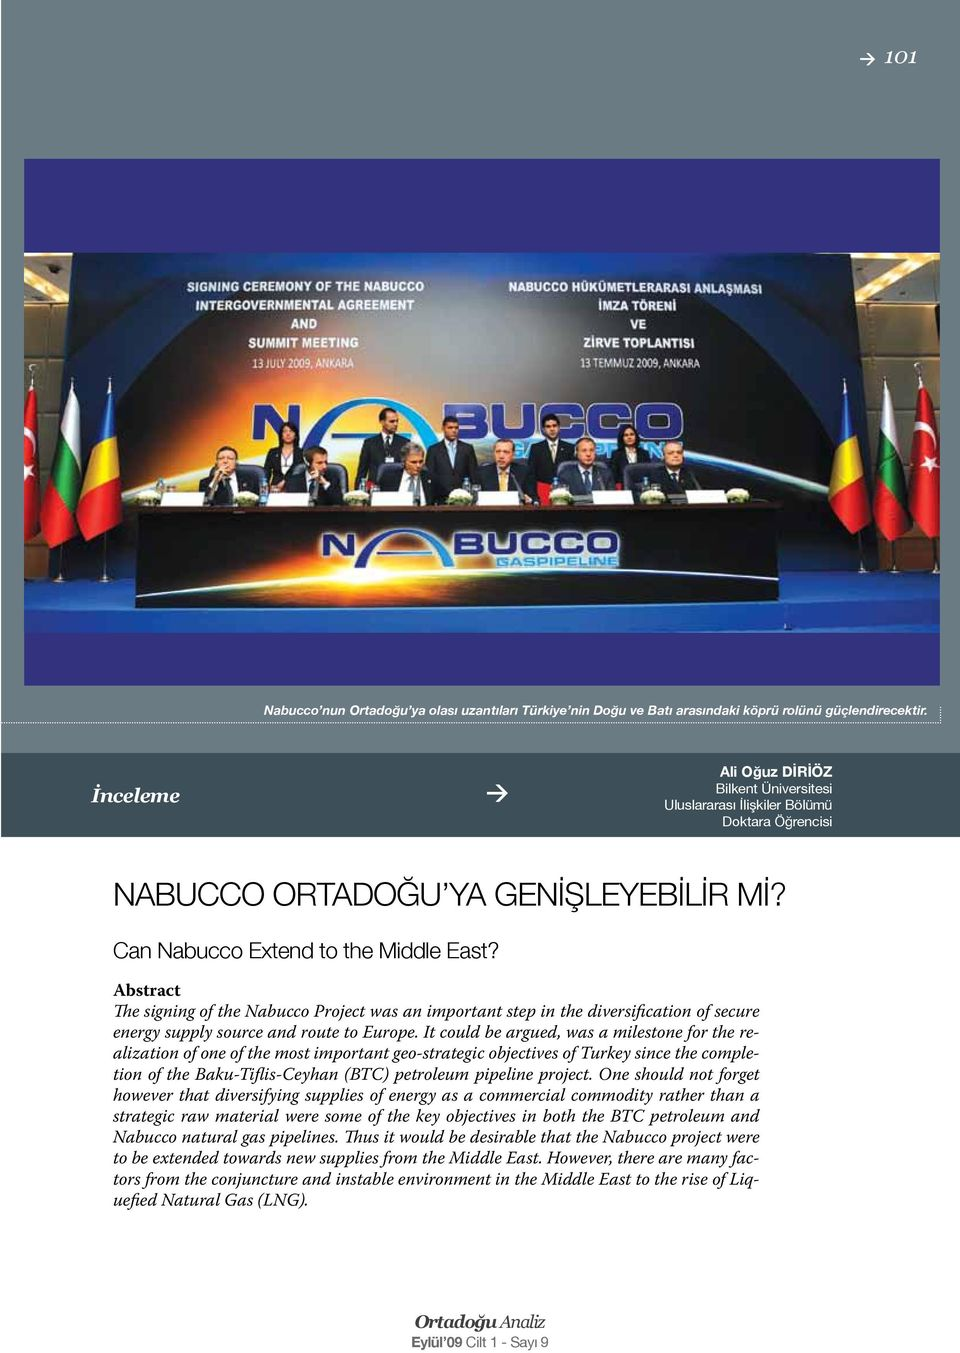 Abstract The signing of the Nabucco Project was an important step in the diversification of secure energy supply source and route to Europe.